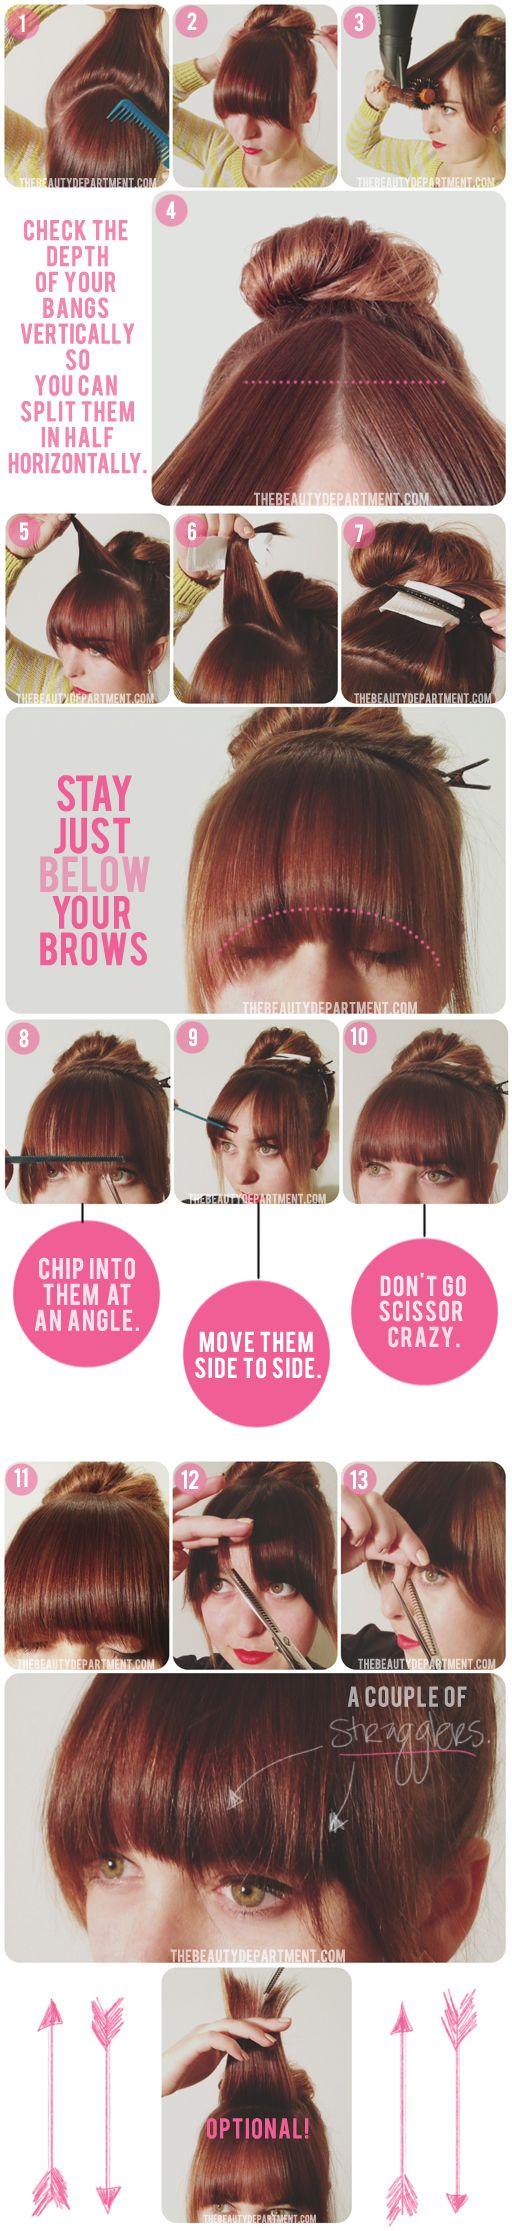 """The Beauty Dept's Step By Step """"how to trim your bangs"""" - super thorough and I definitely will try"""